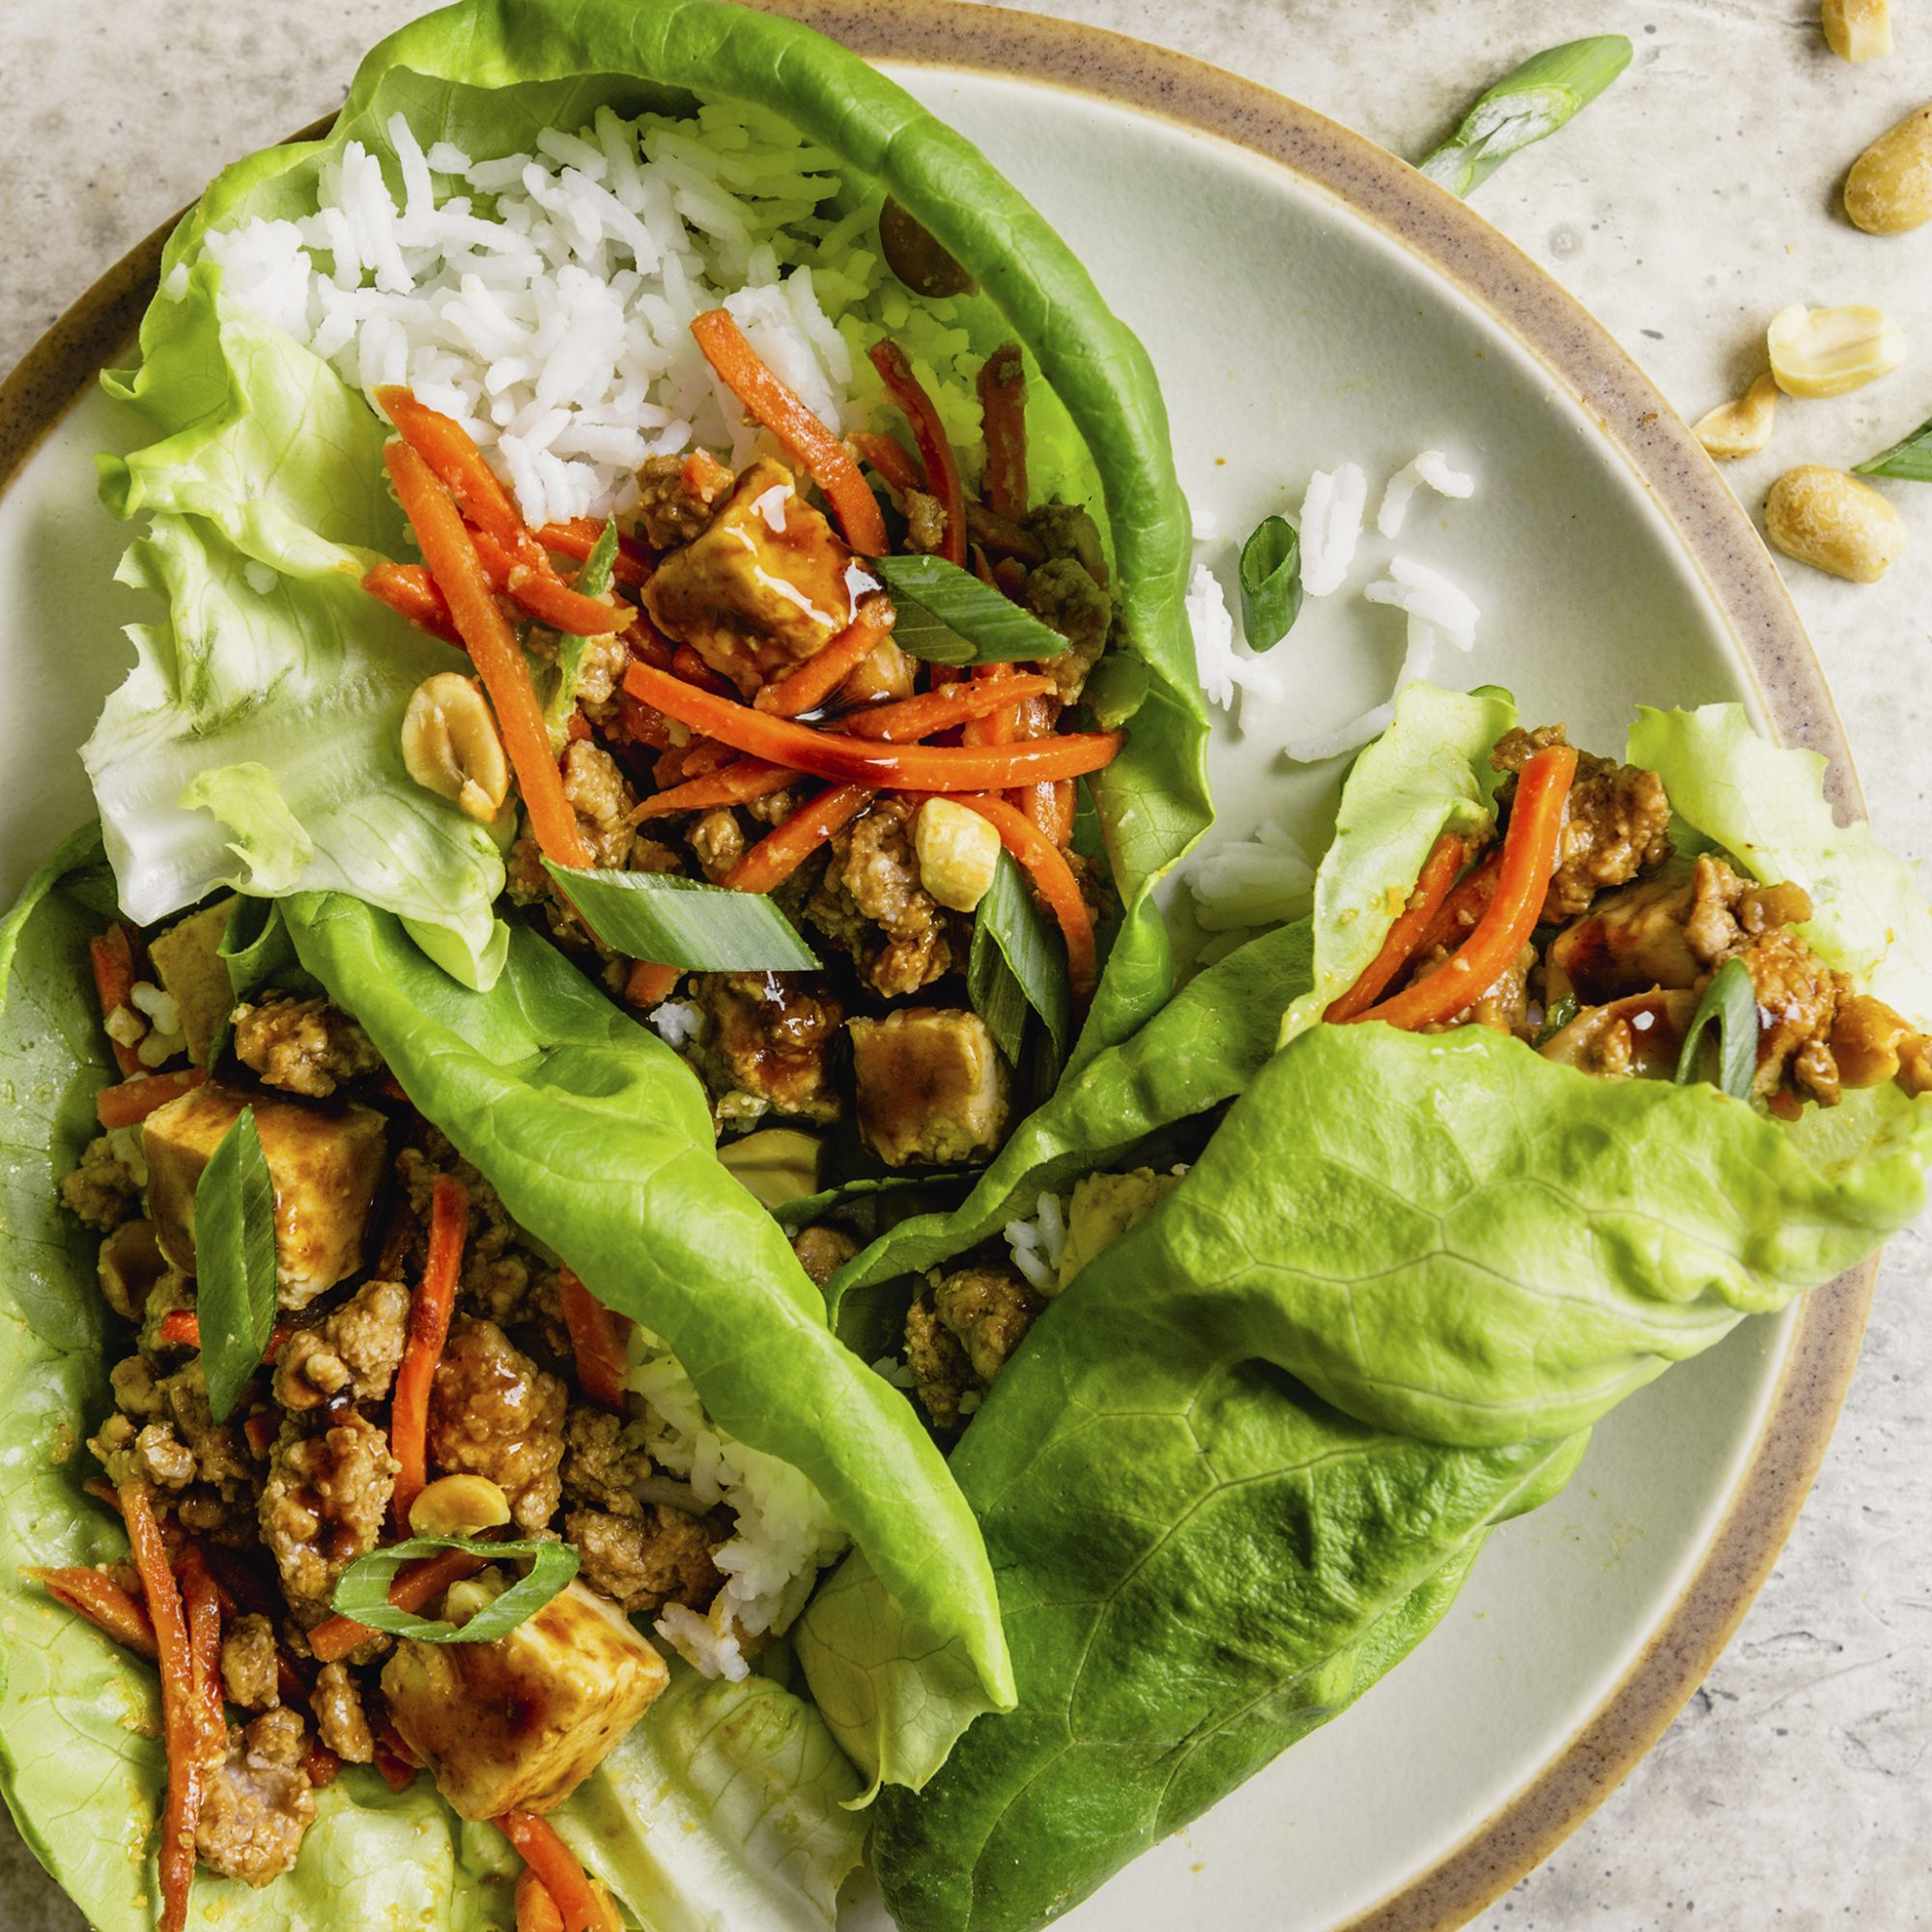 A plate of three Quick Asian Lettuce Wraps garnished with peanuts and sliced scallions